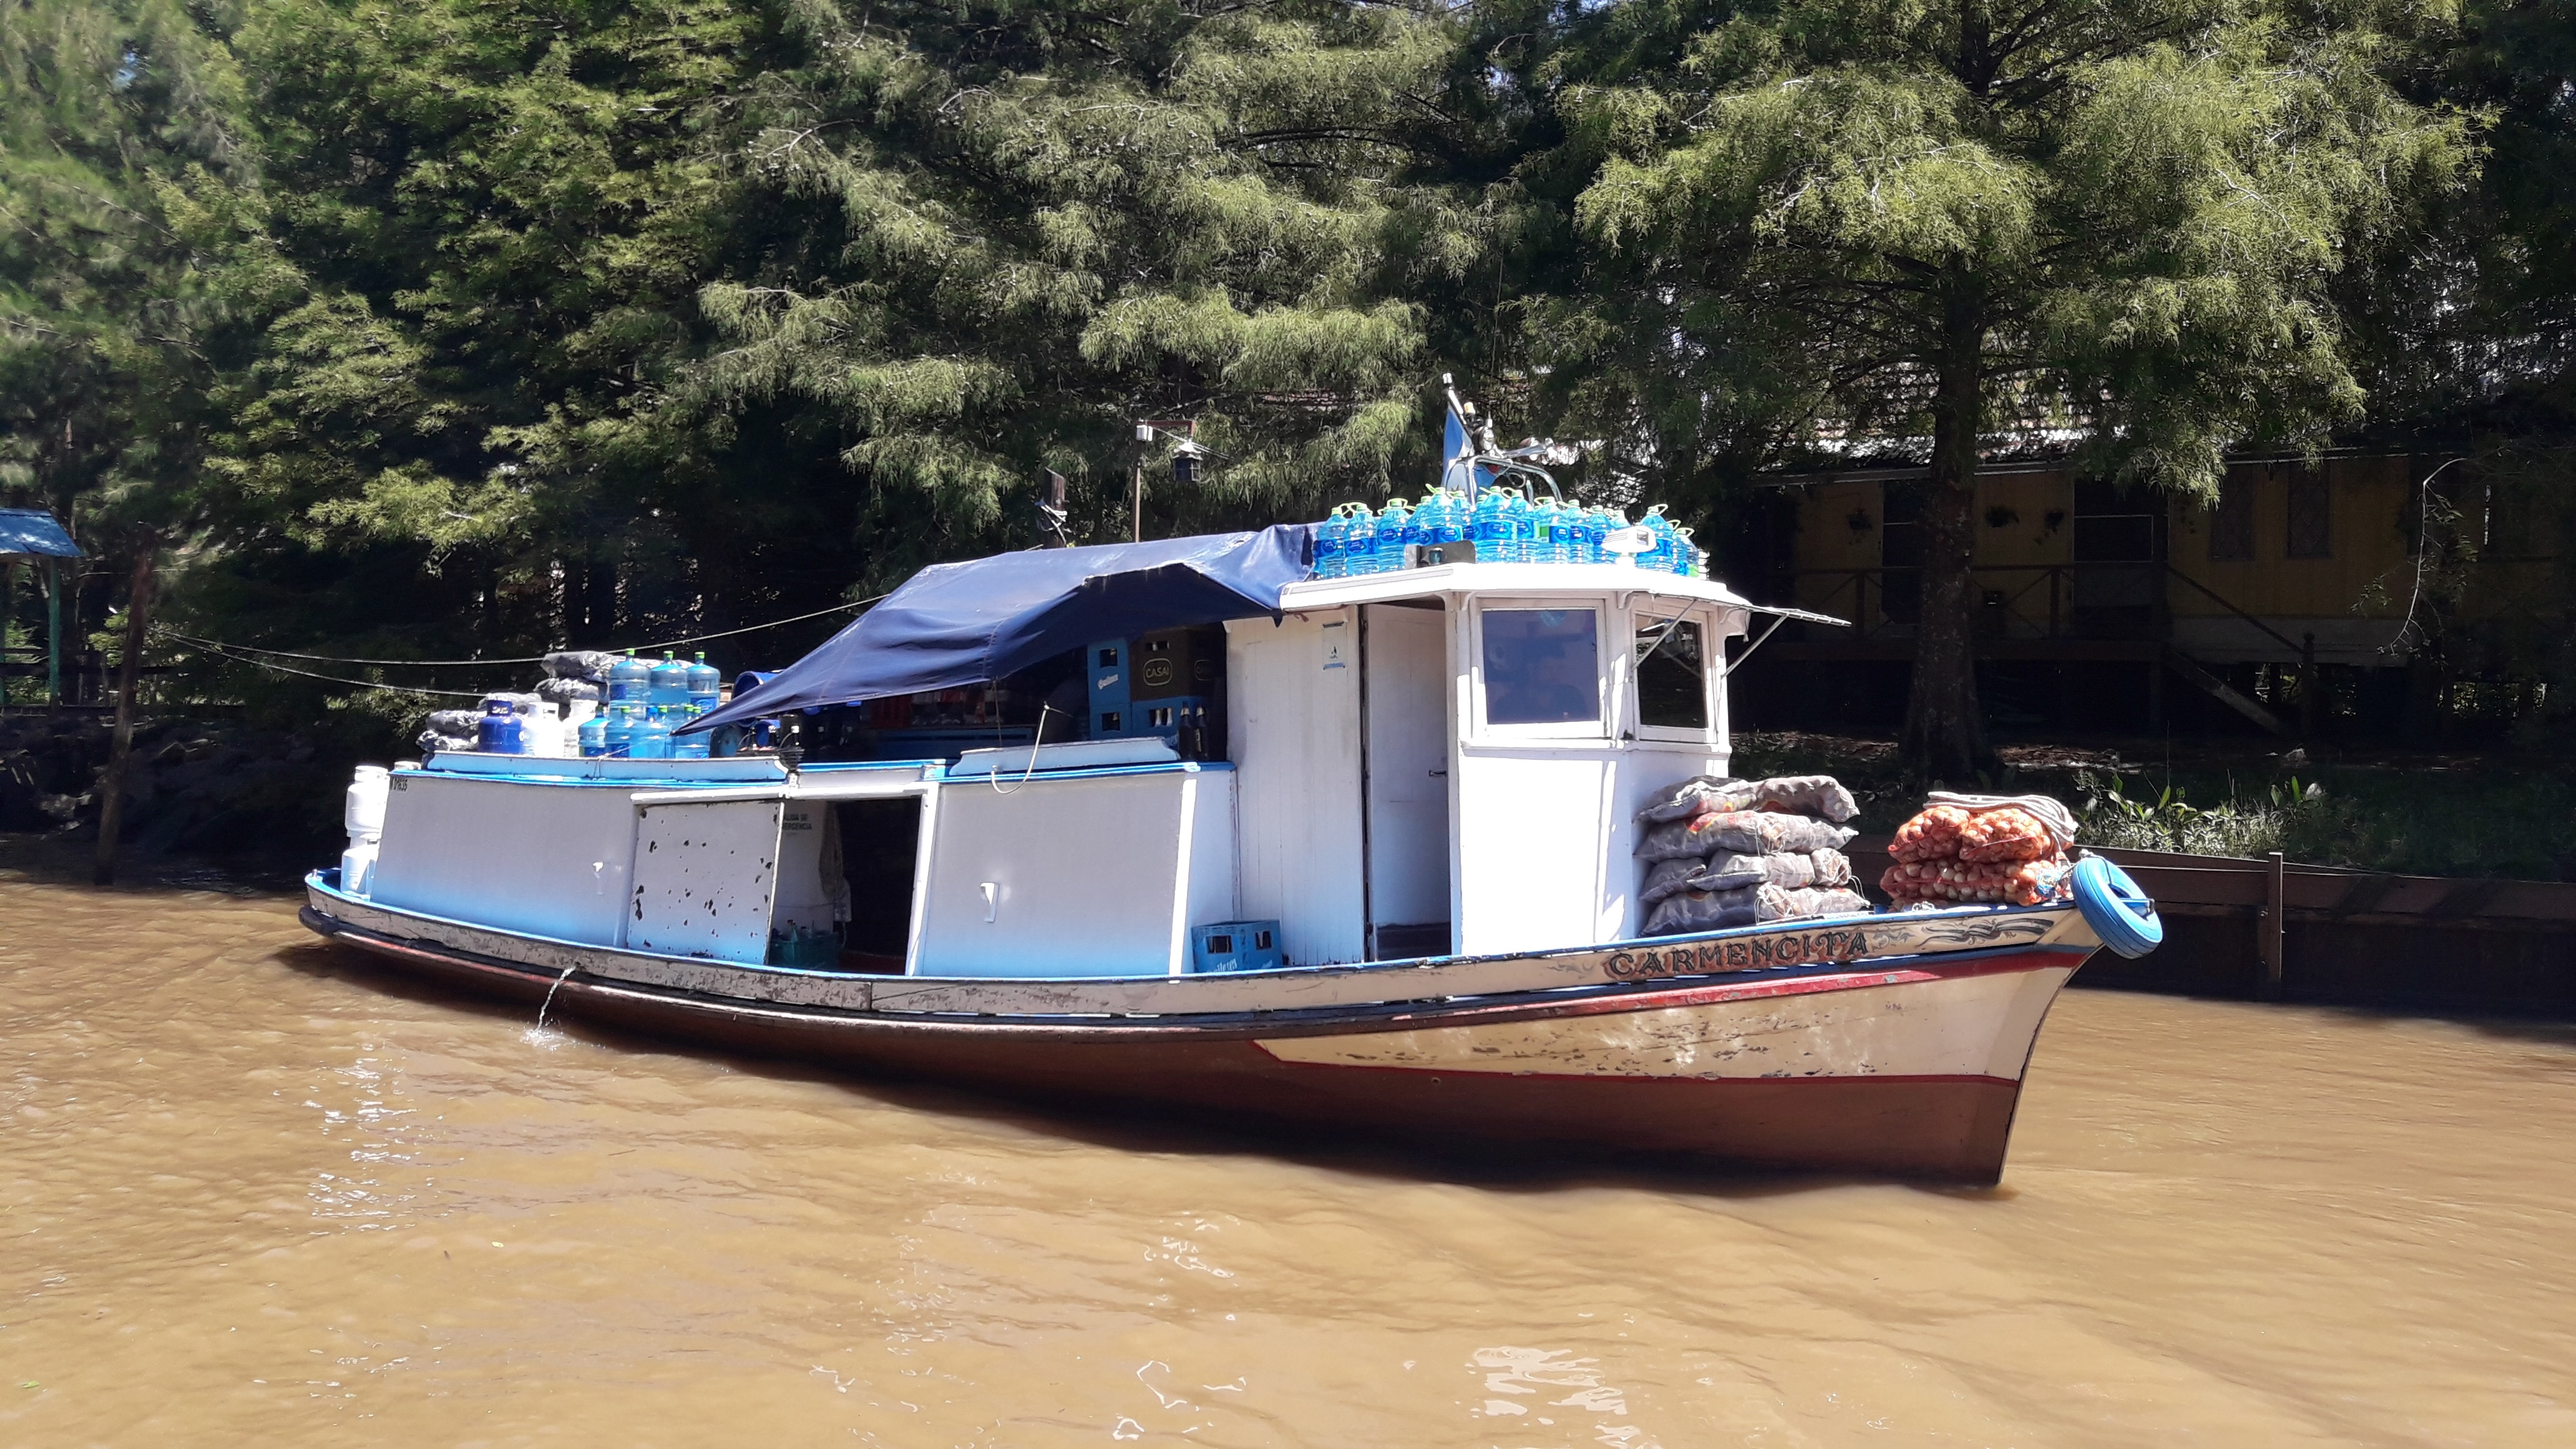 Tigre and The Delta - Buenos Aires Cruising Day Tour 2